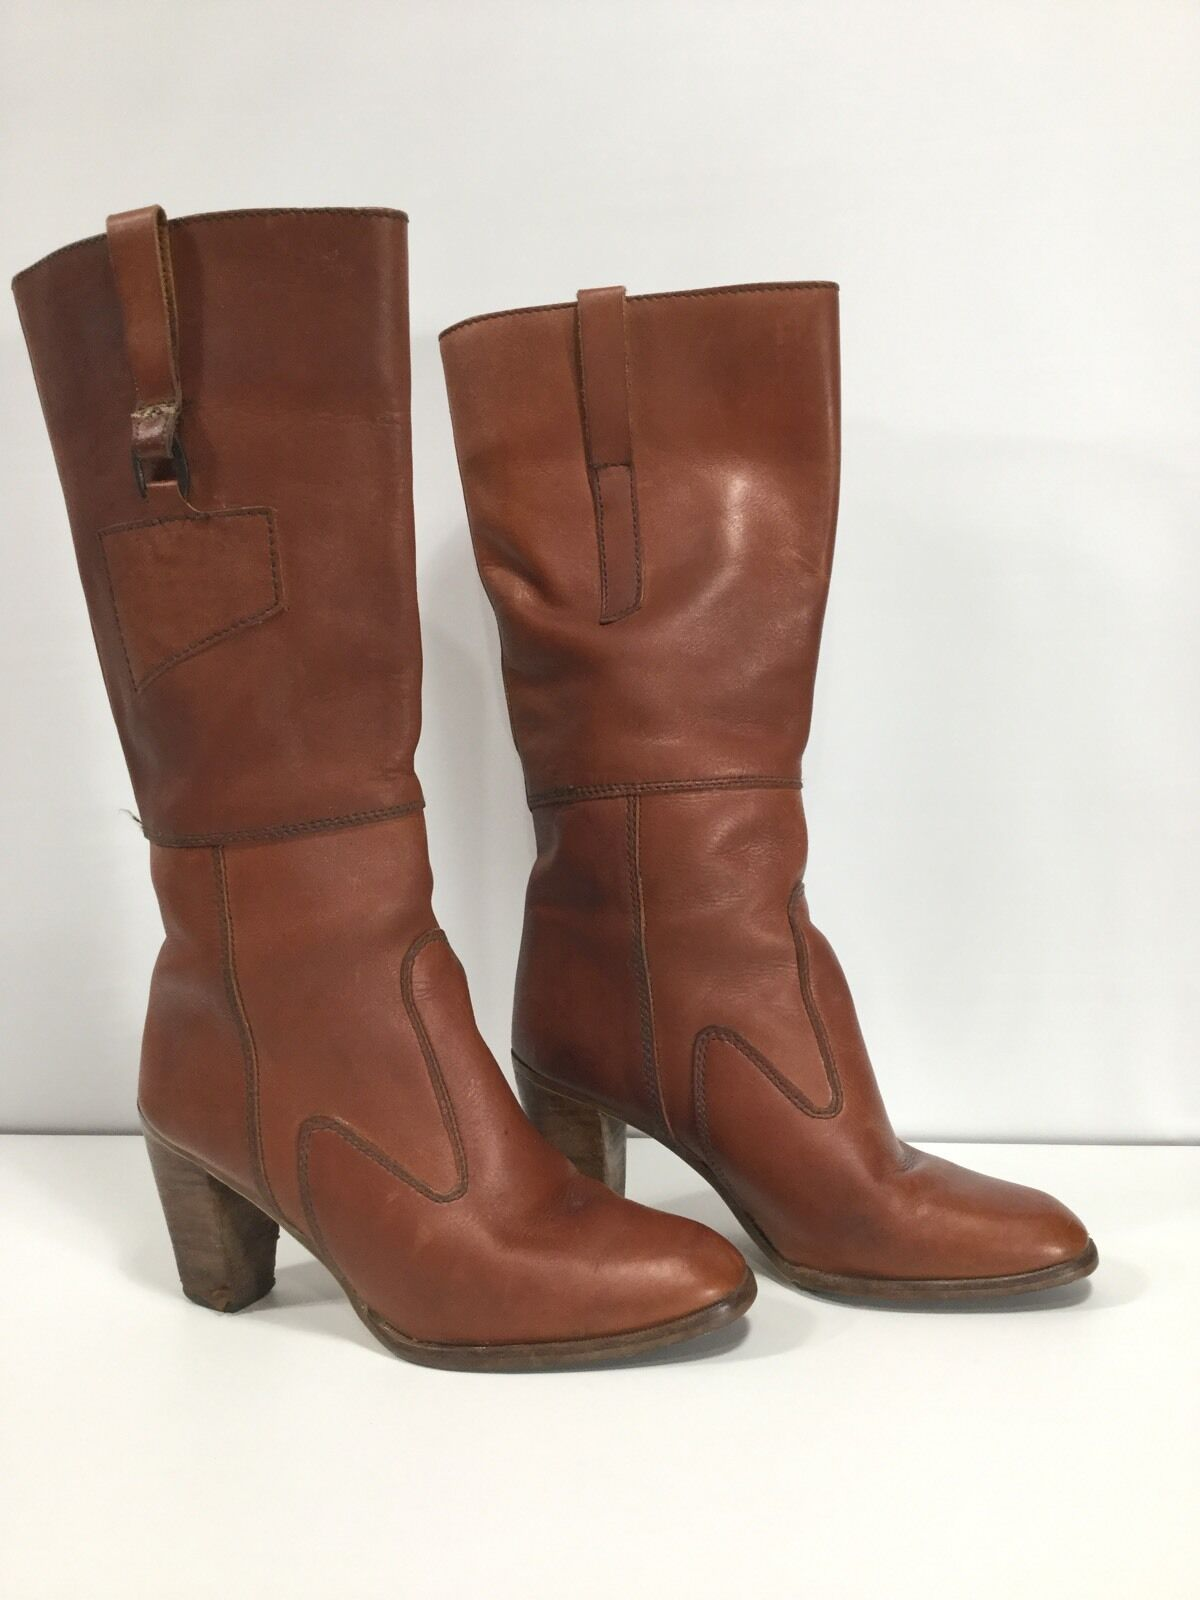 VINTAGE Caramel Leather Knee High Harness Campus Boots Uruguay 8.5 M